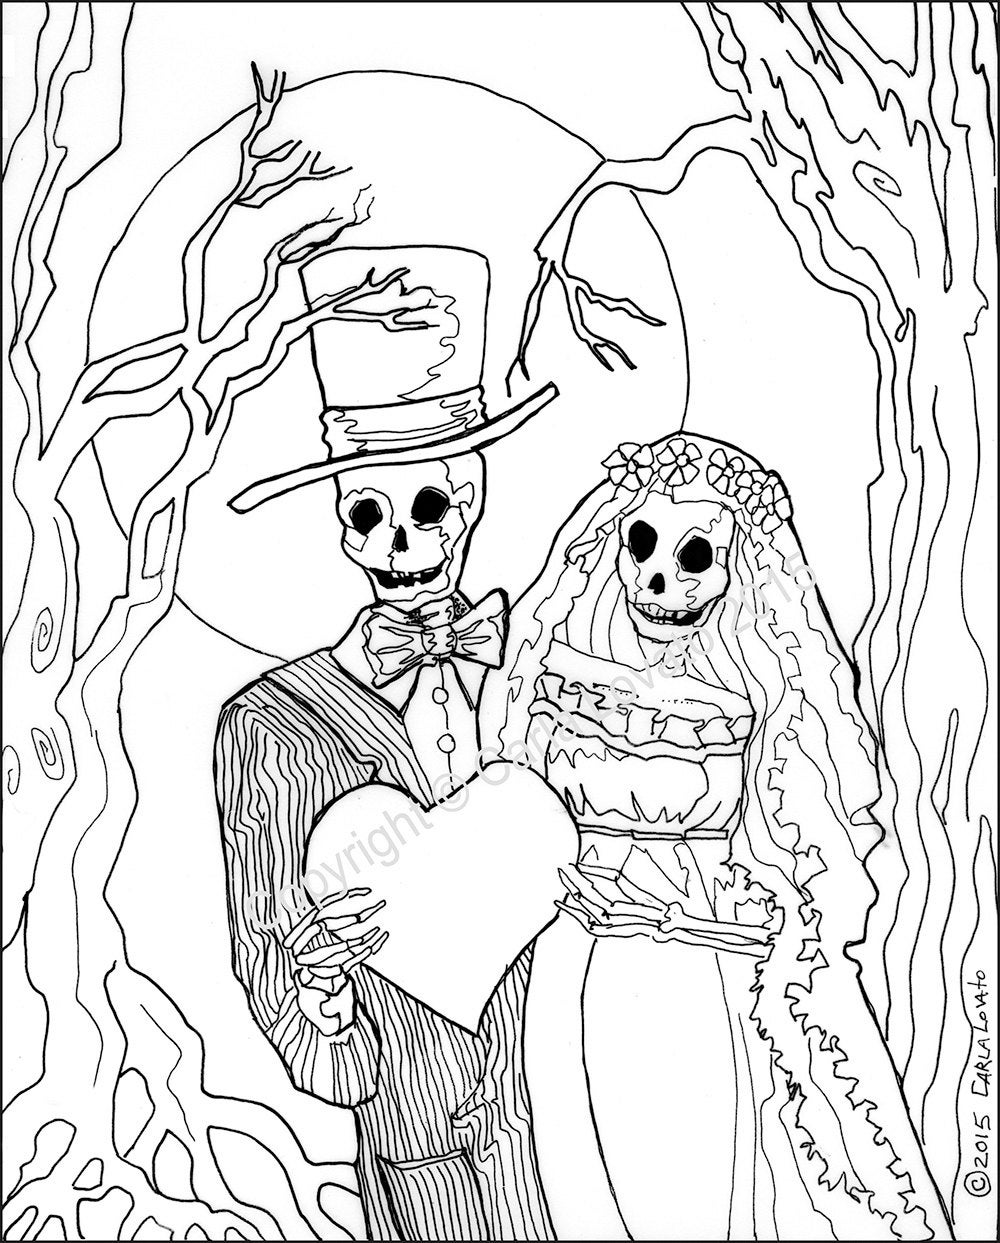 day of the dead pictures to color coloring pages skeleton wedding color page day of the dead of pictures the day dead color to